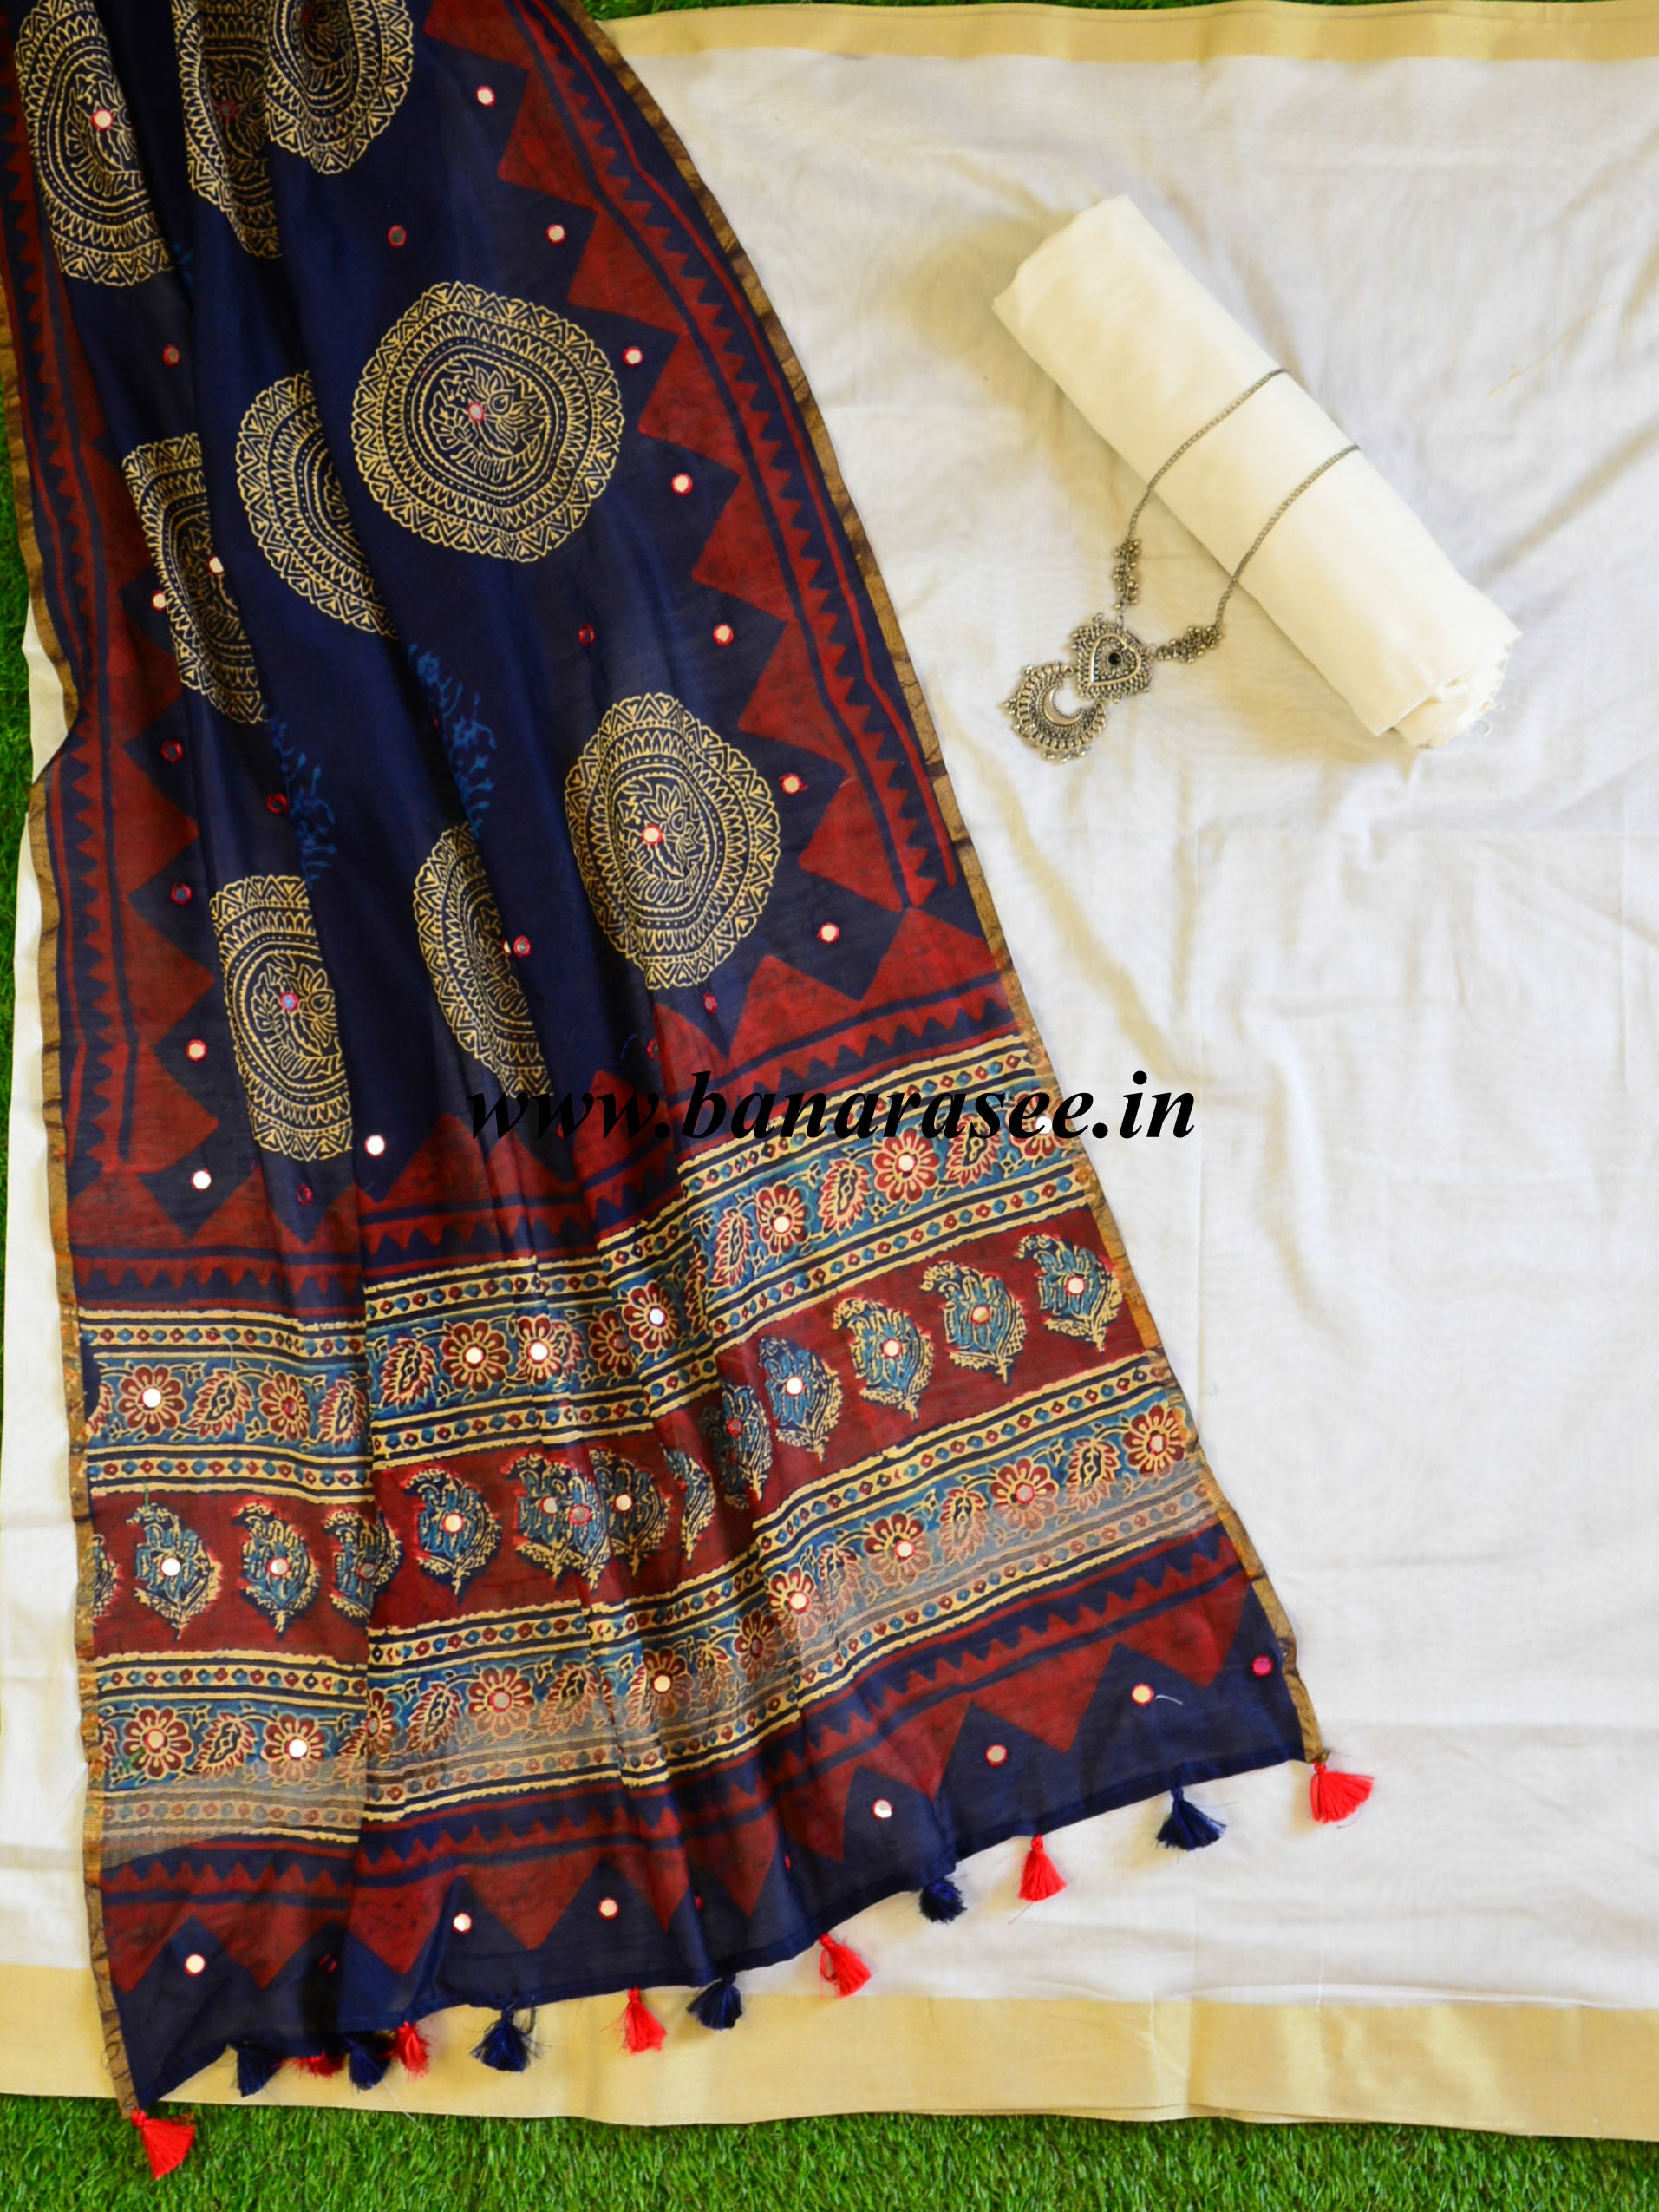 Banarasee Chanderi Salwar Kameez Fabric With Mirror Work Indigo Ajrakh Dupatta-White